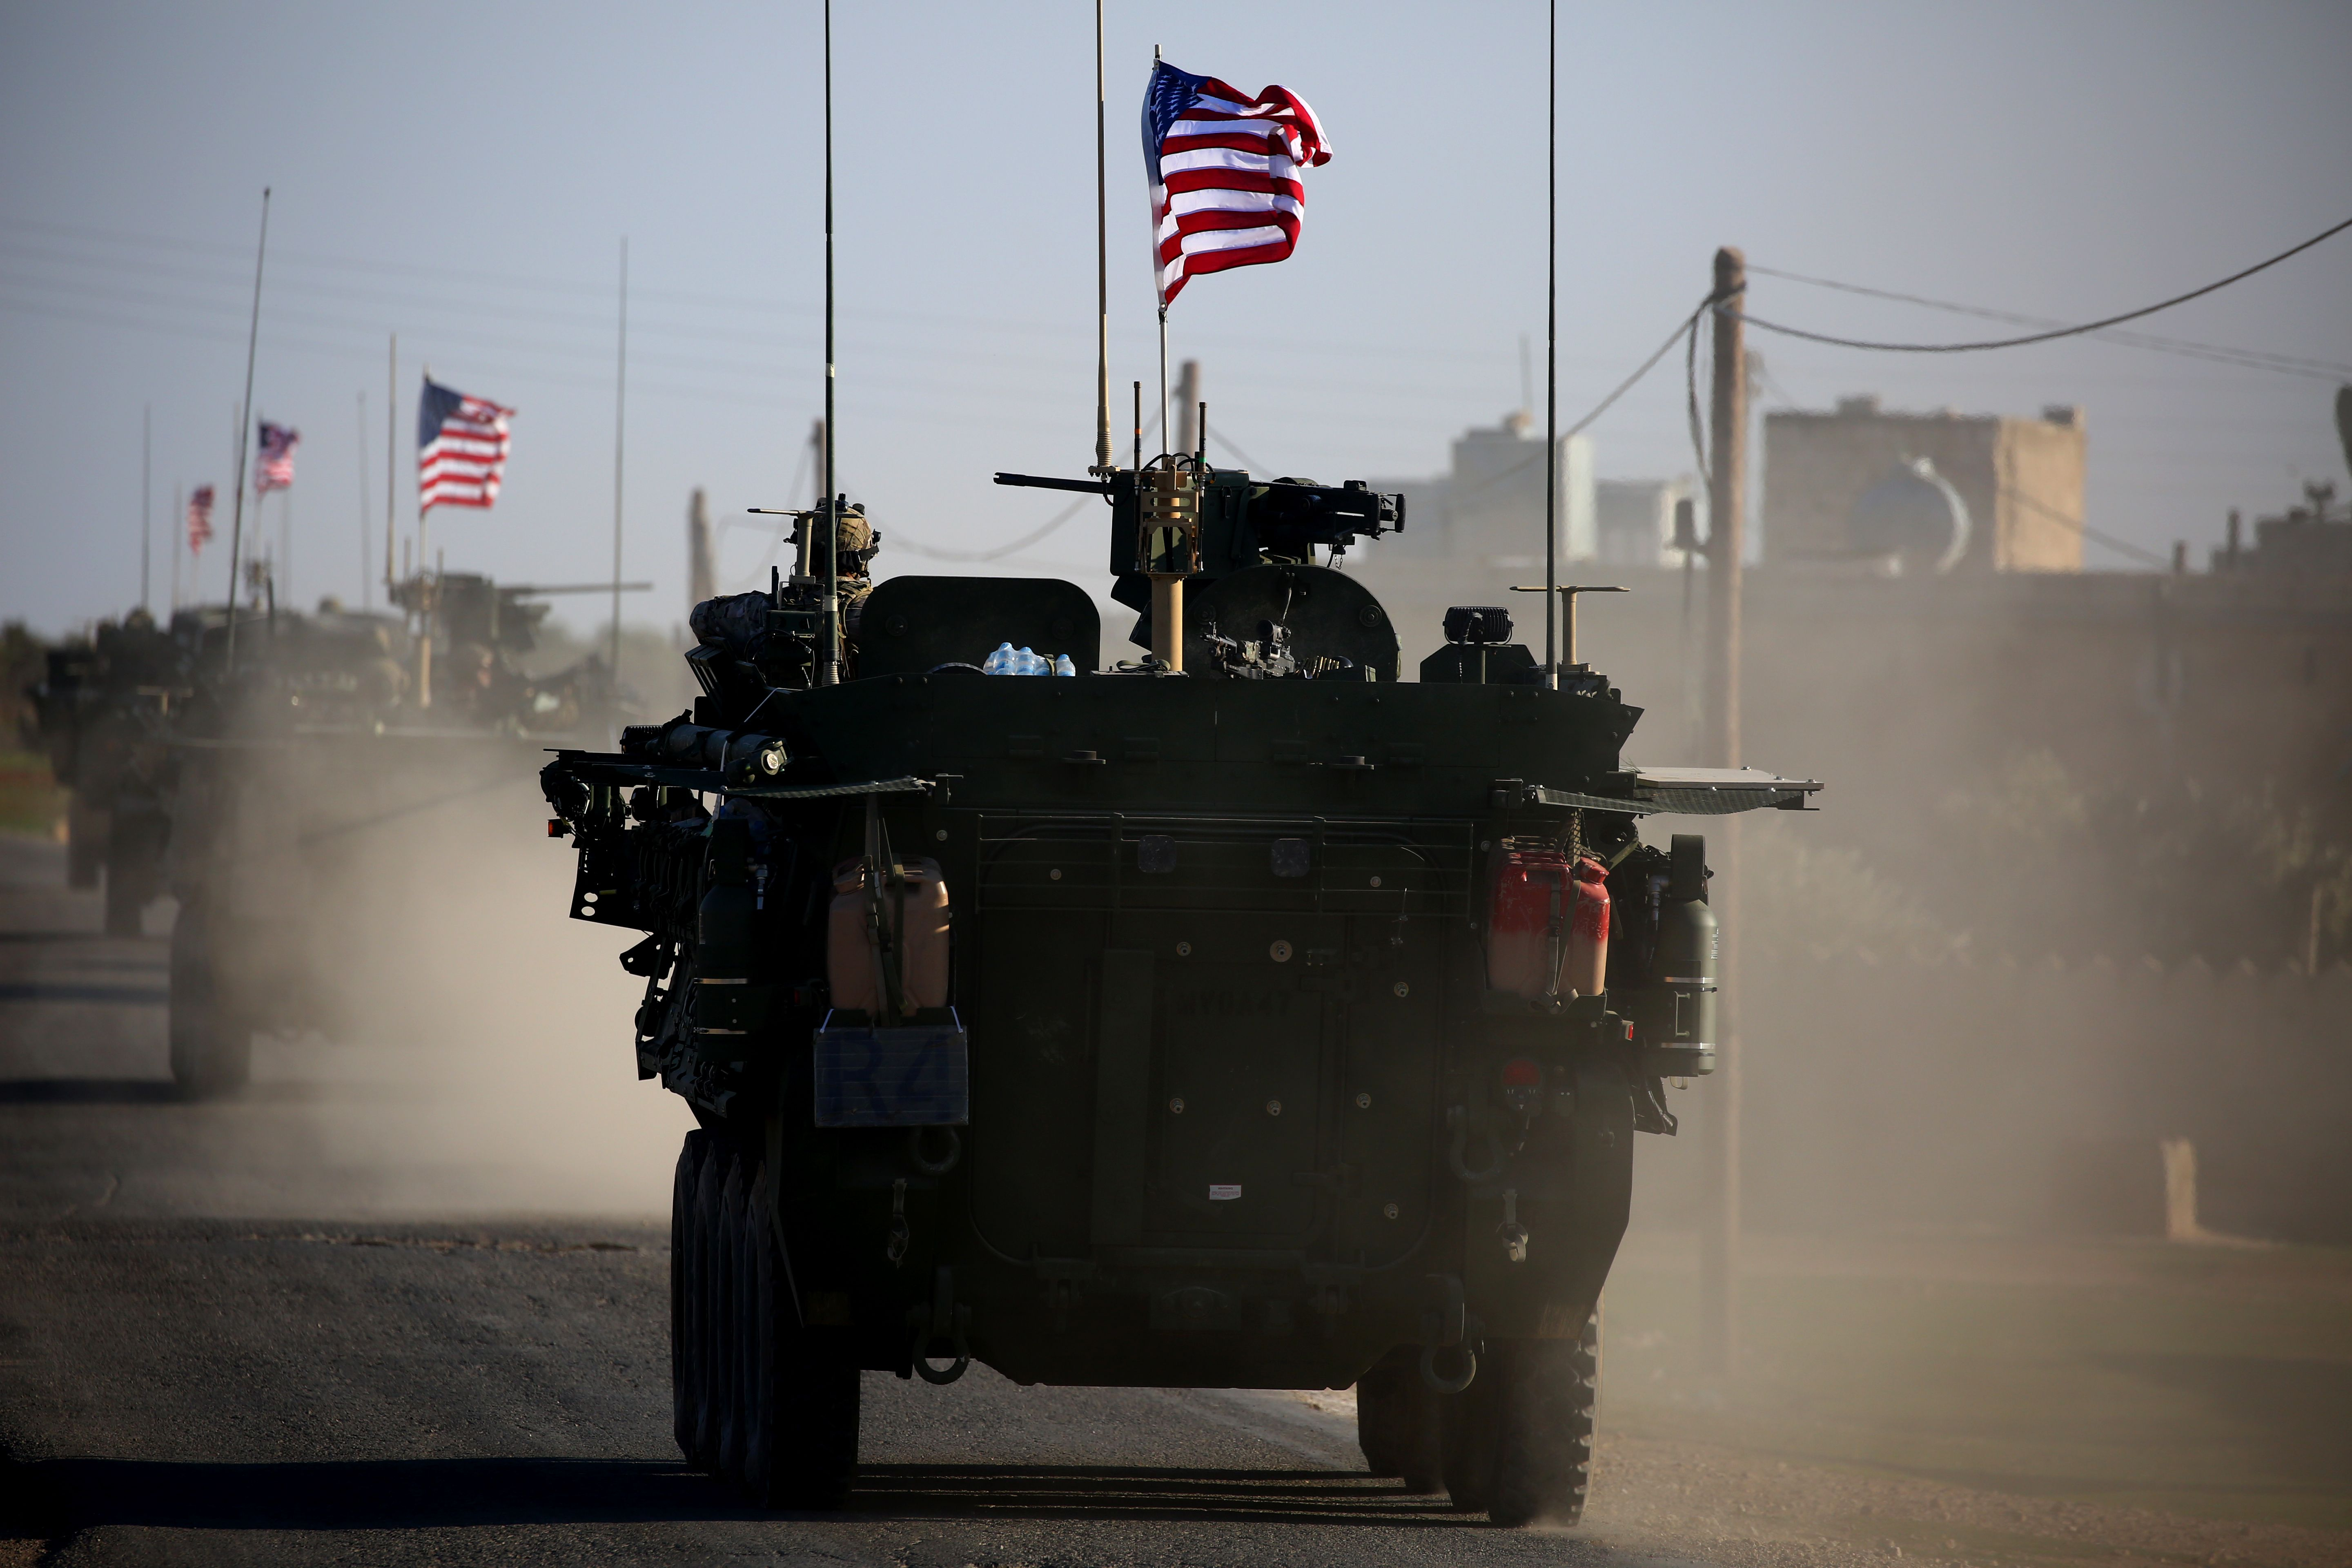 A convoy of US forces armored vehicles drives near the village of Yalanli, on the western outskirts of the northern Syrian city of Manbij, on March 5, 2017.